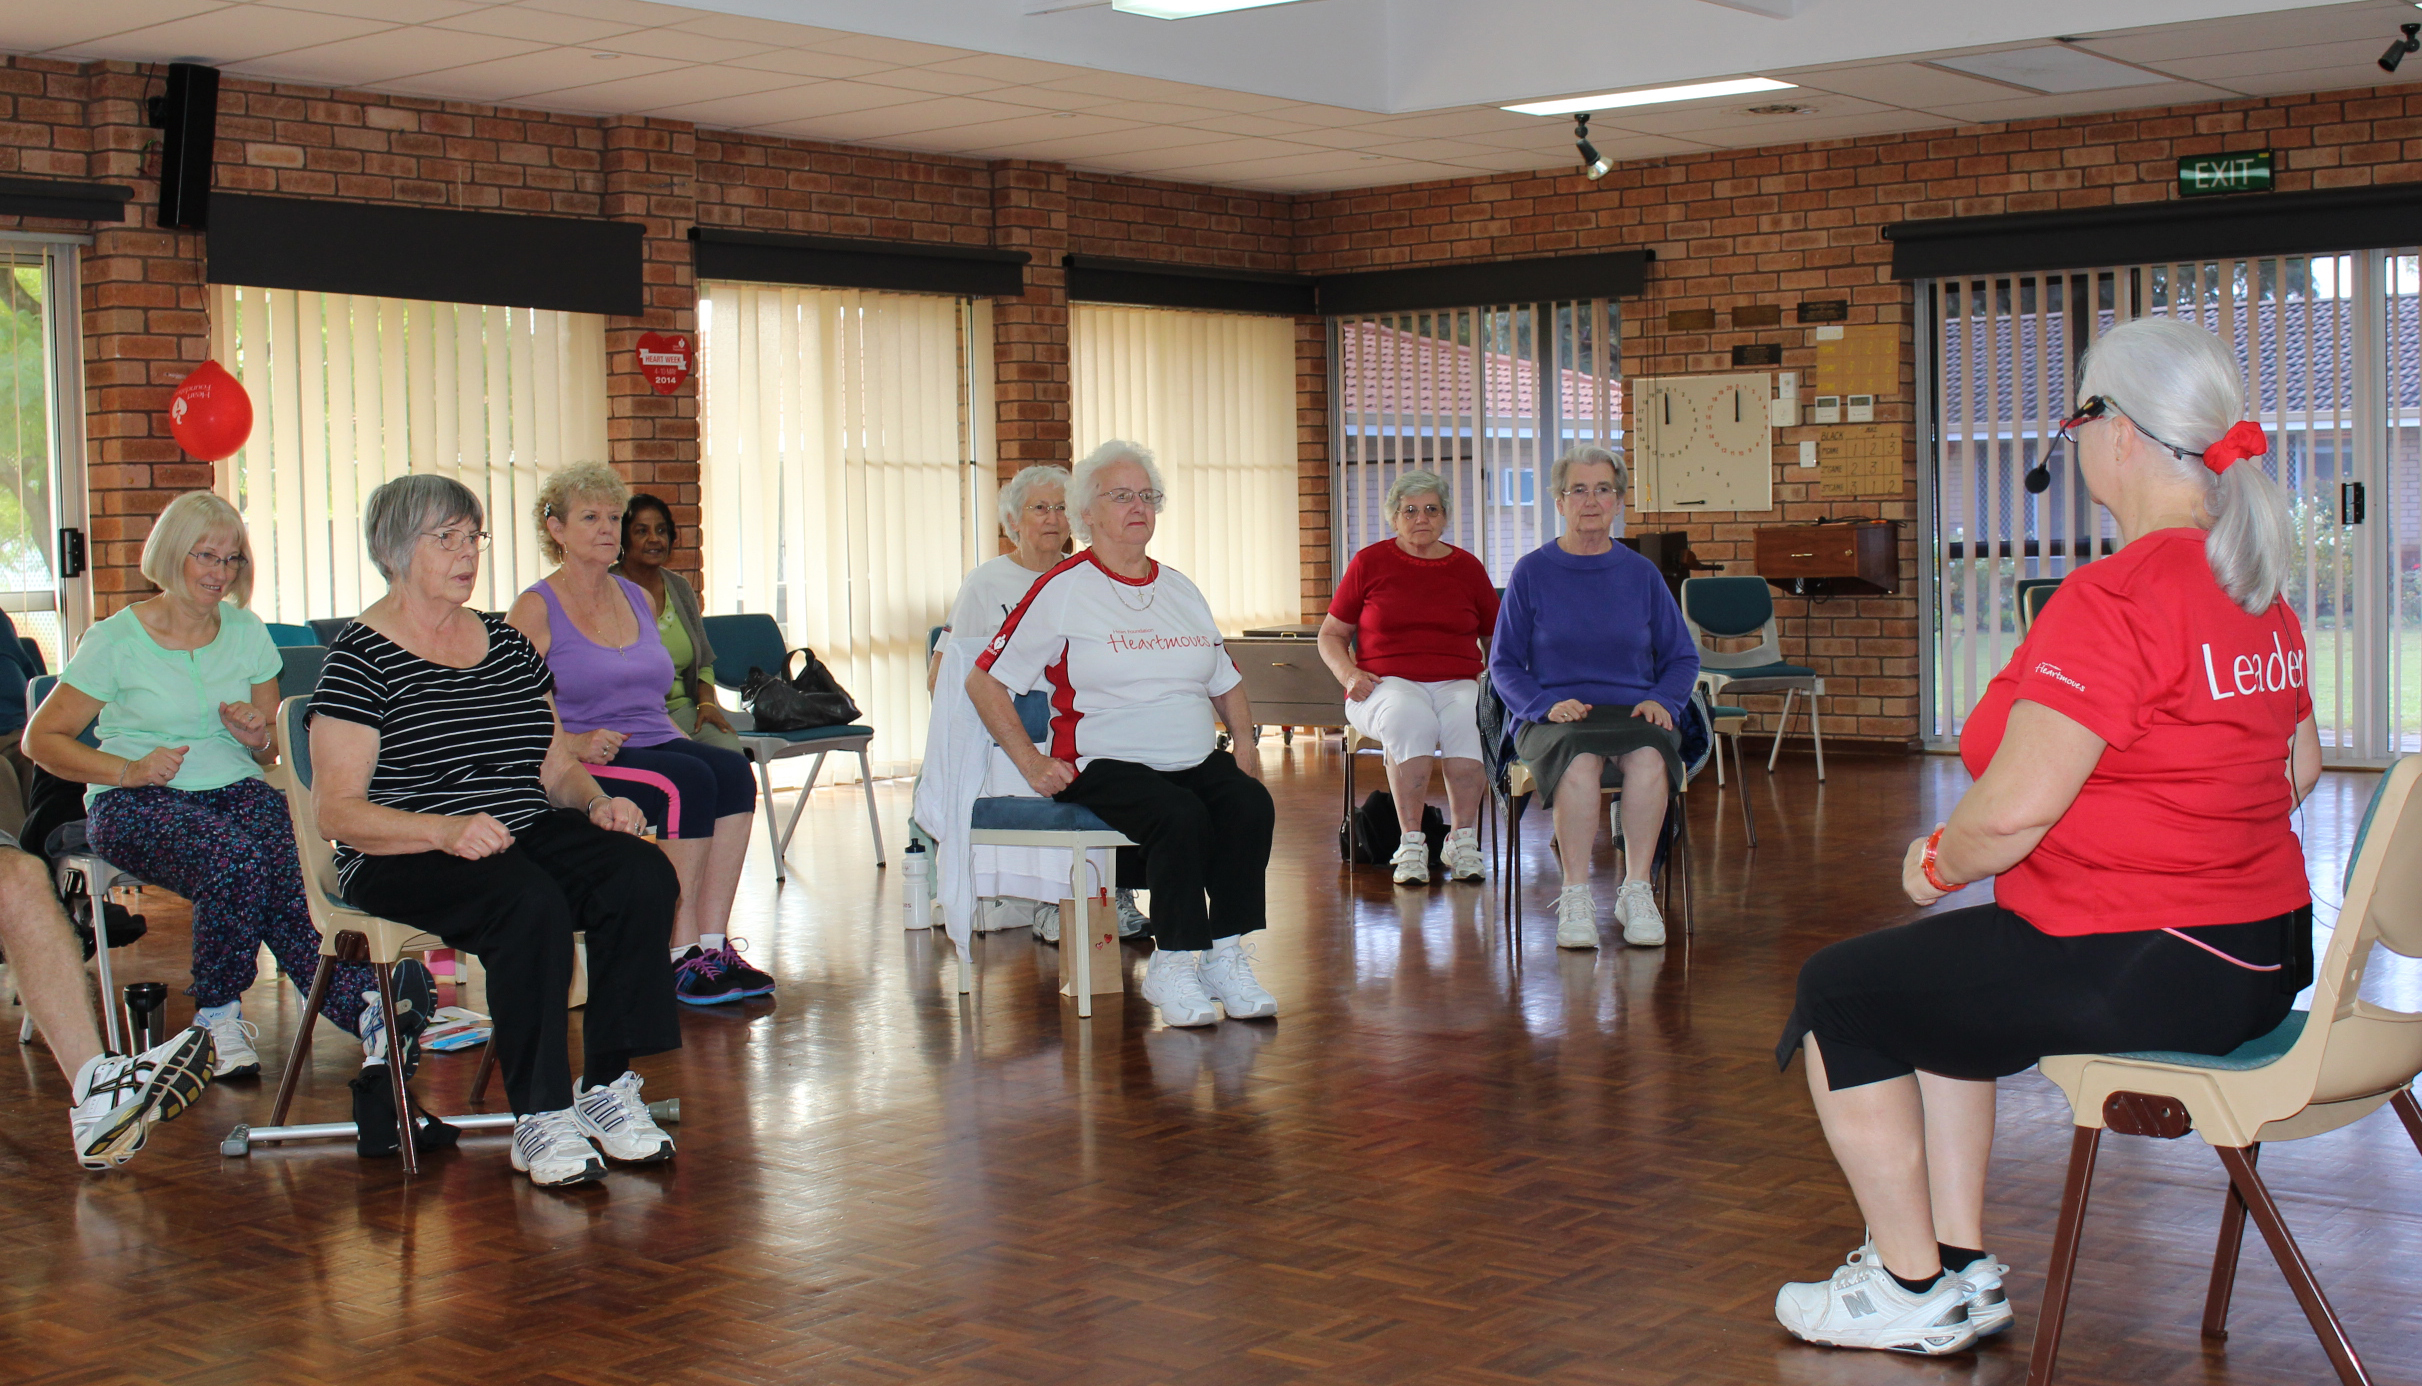 Getting moving at the Heart Foundation's Heartmoves session in Gosnells.